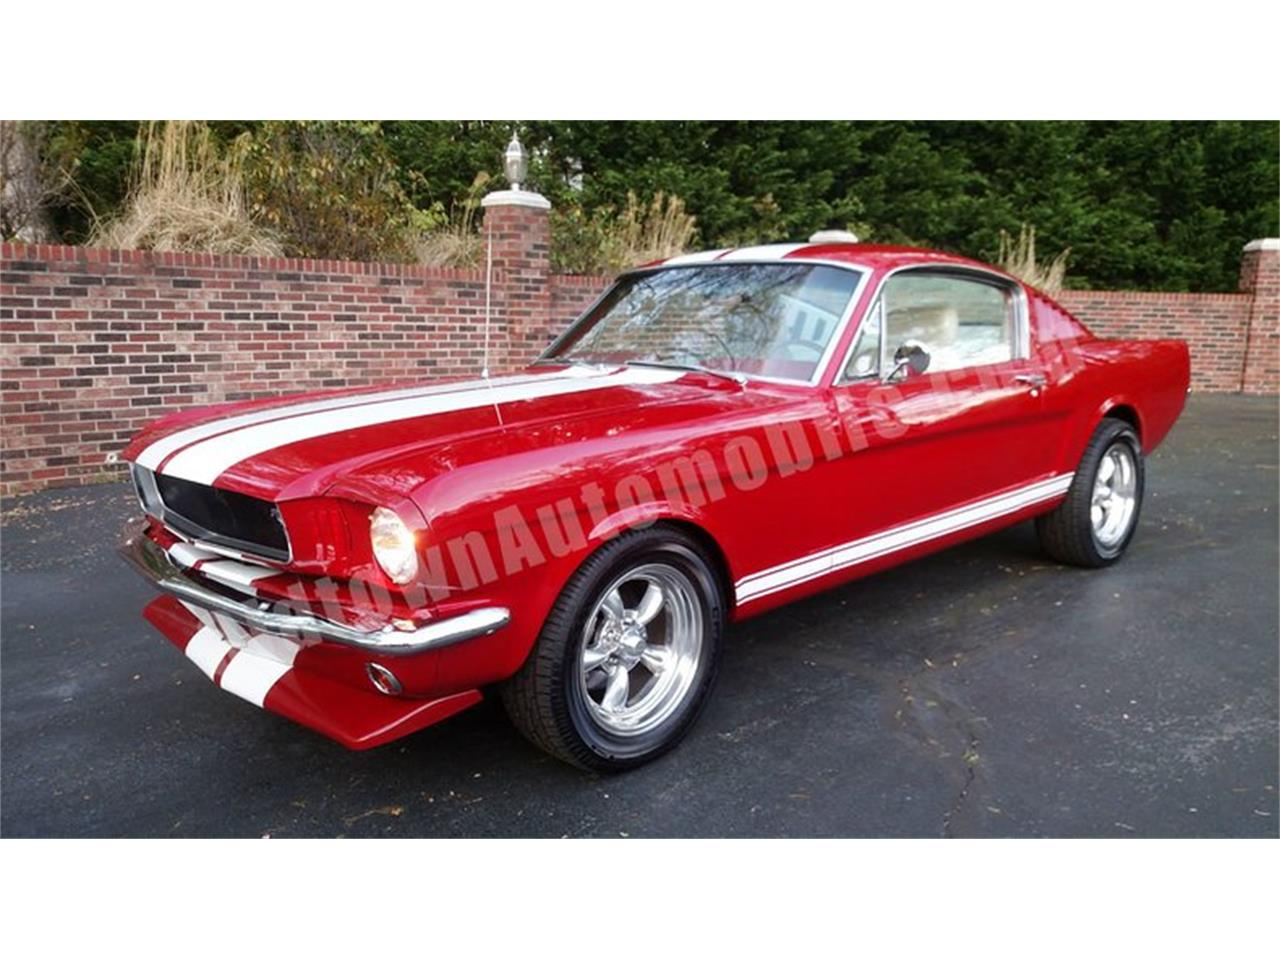 Old Mustangs For Sale >> 1965 Ford Mustang For Sale Classiccars Com Cc 1211433